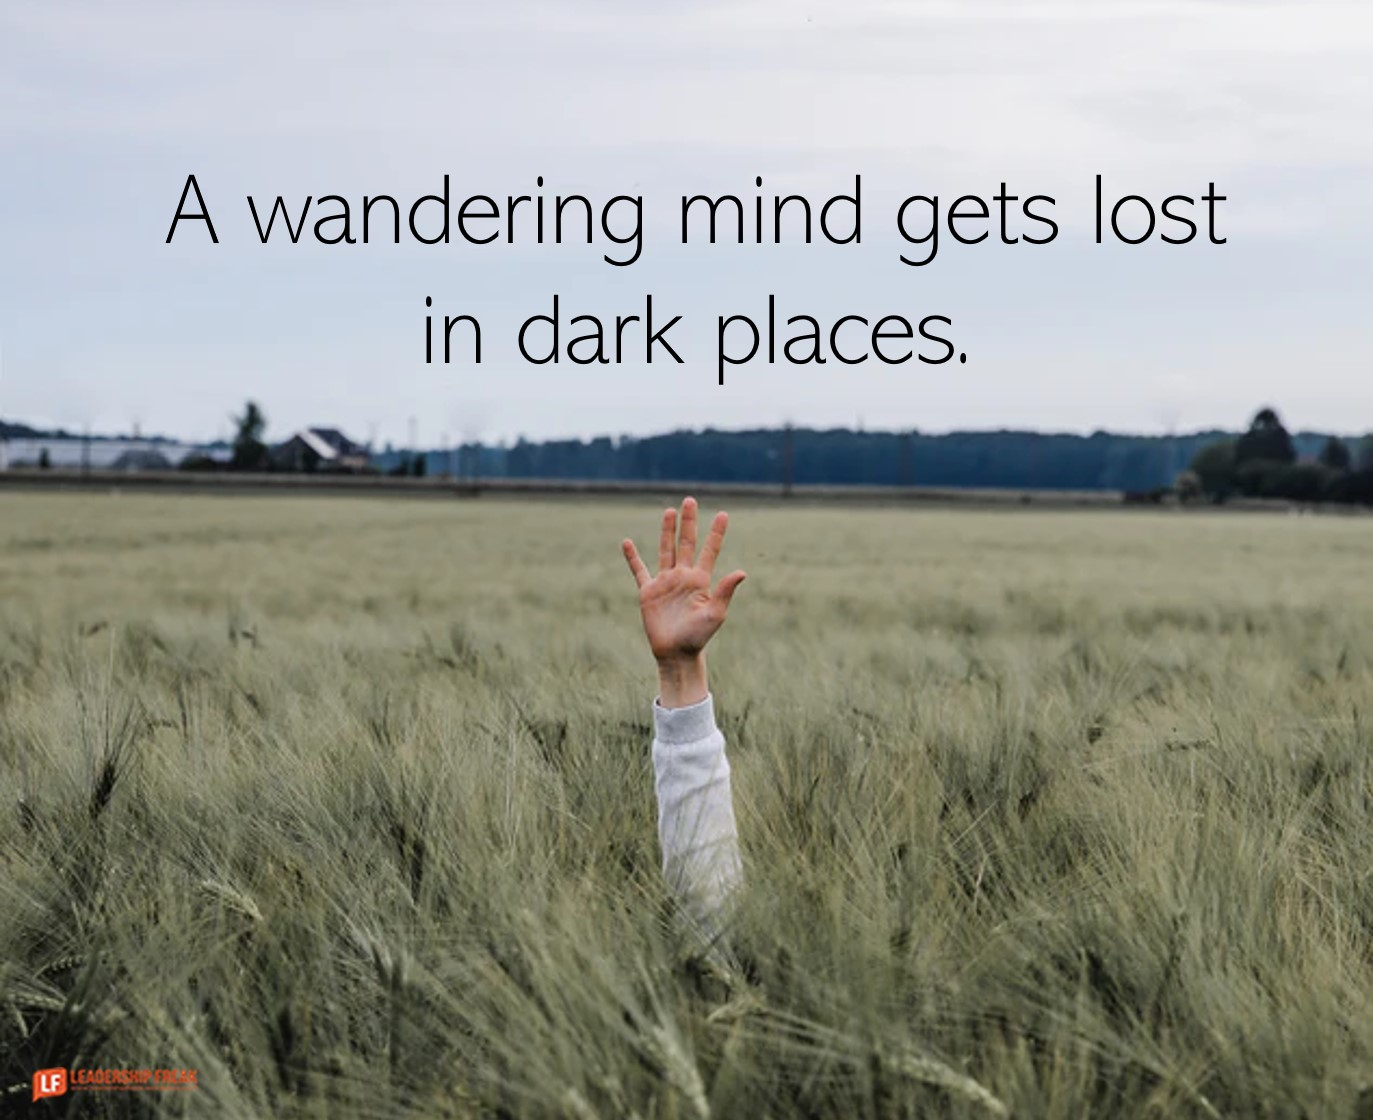 Hand up.  A wandering mind gets lost in dark places.